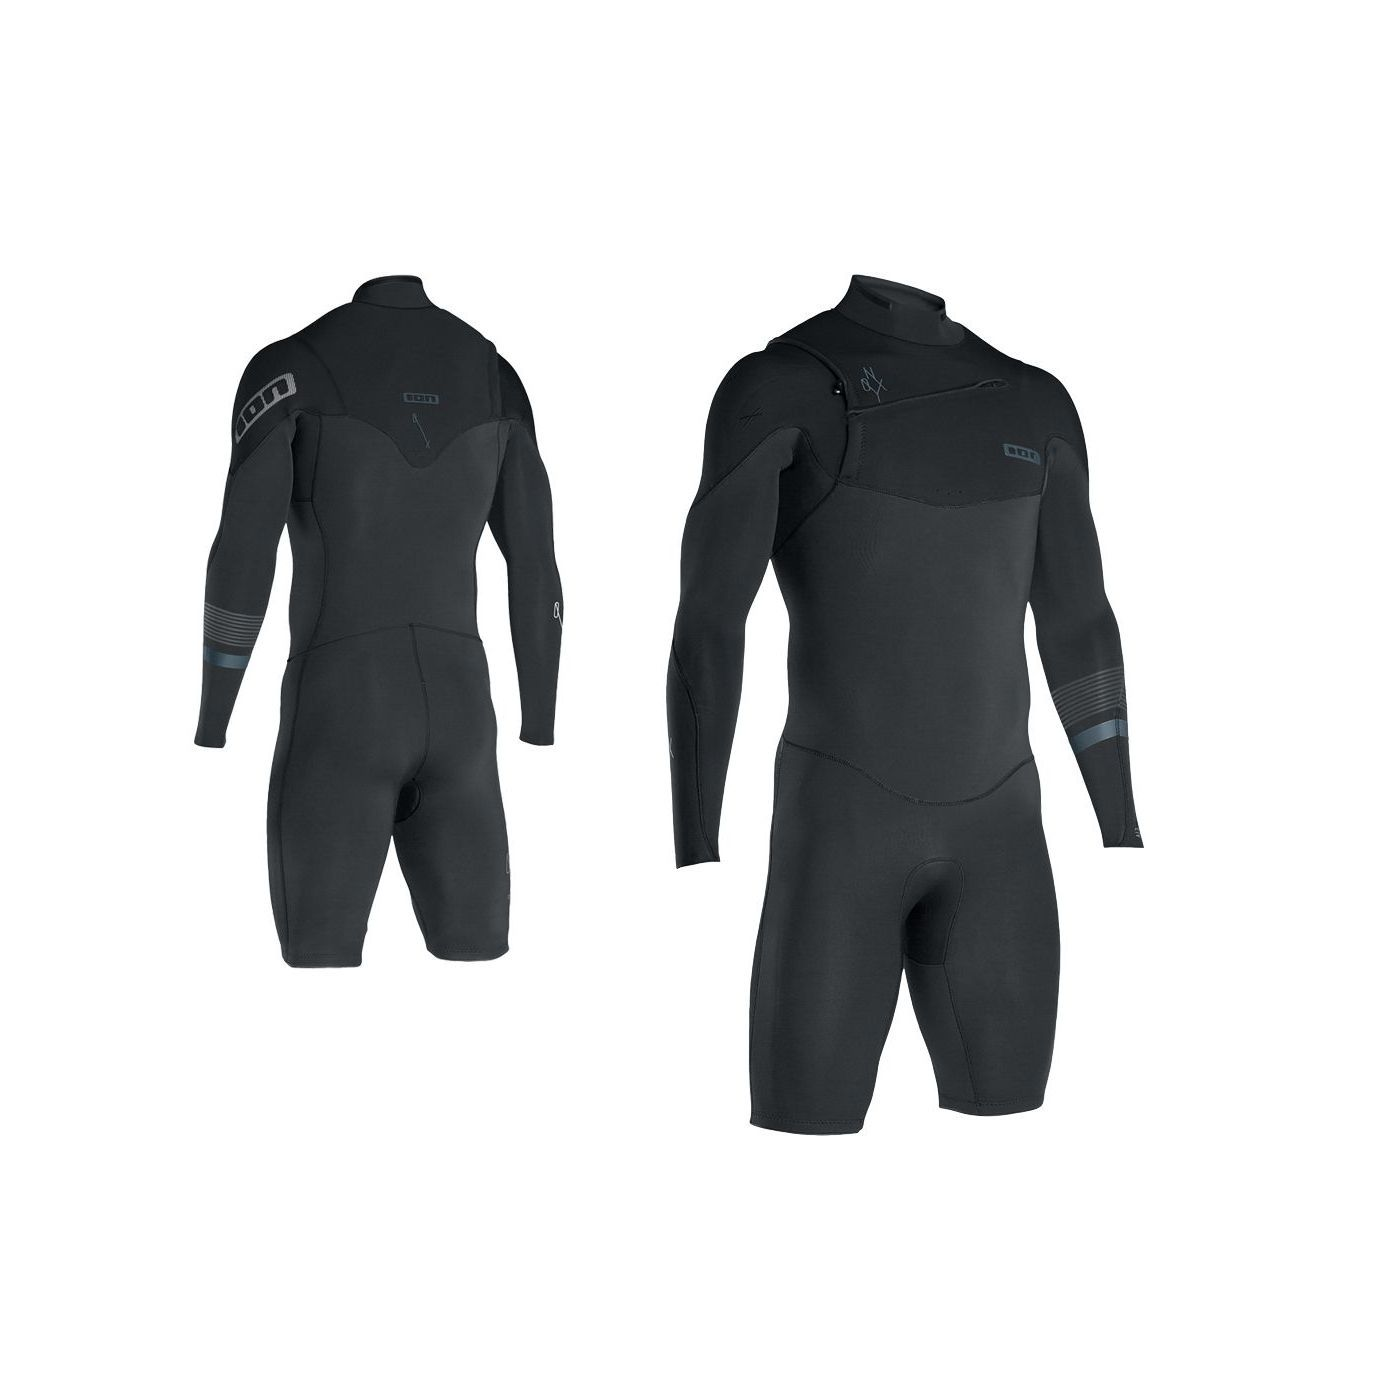 ec3ff957ba ION Onyx Mens Wetsuit Shorty Springsuit LS - BUY ONLINE! - Manly ...